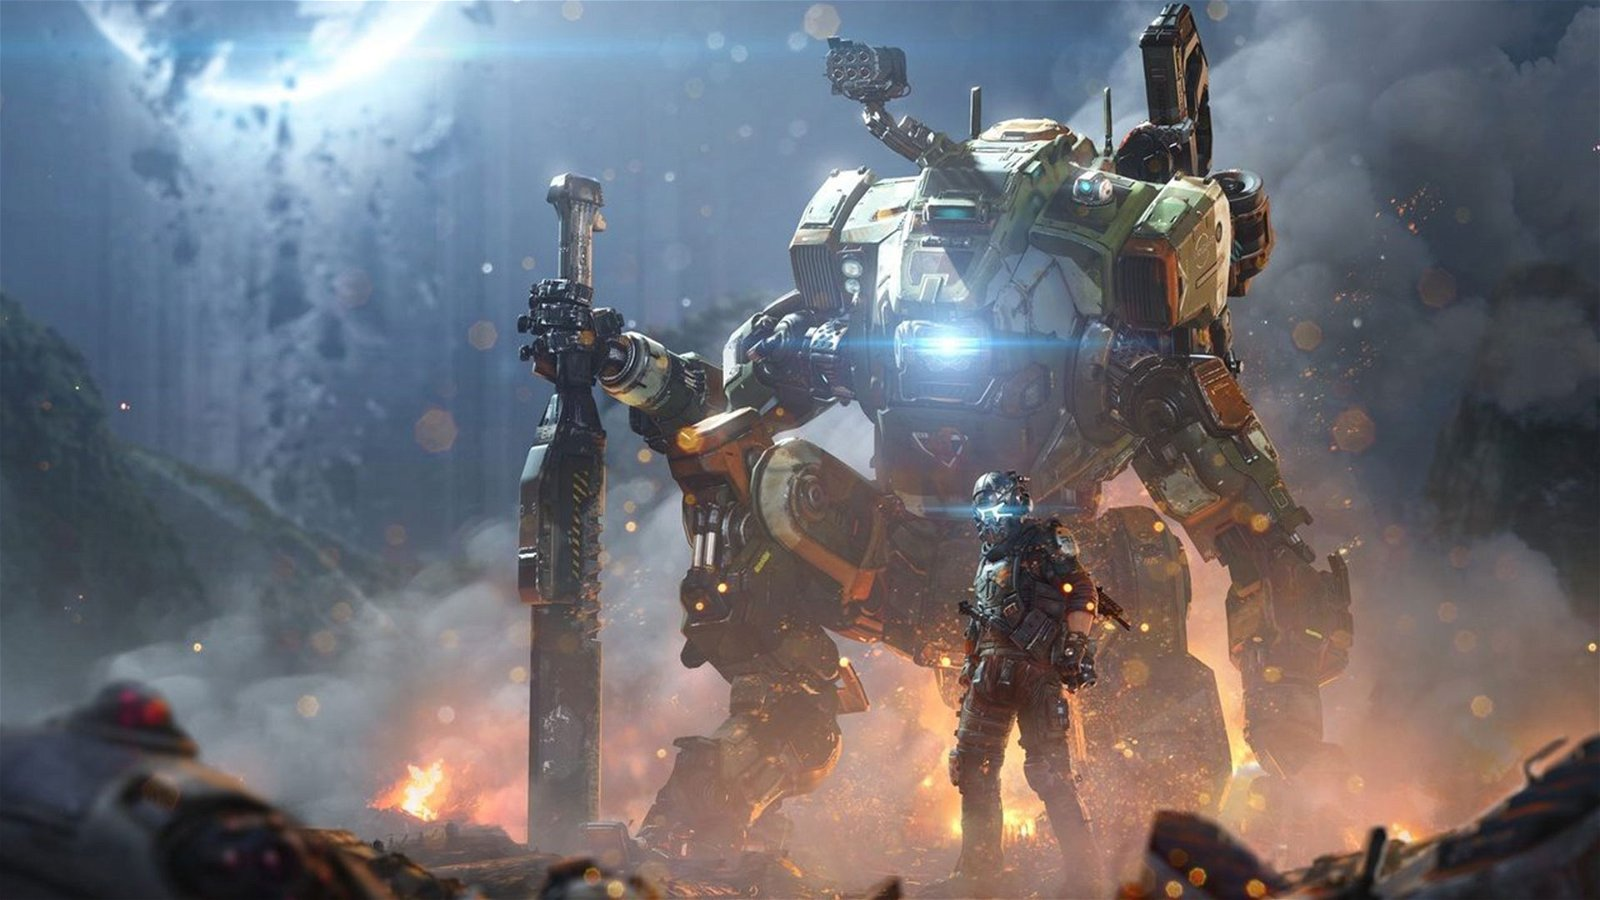 Titanfall 2 Sees A Massive Rise In Players